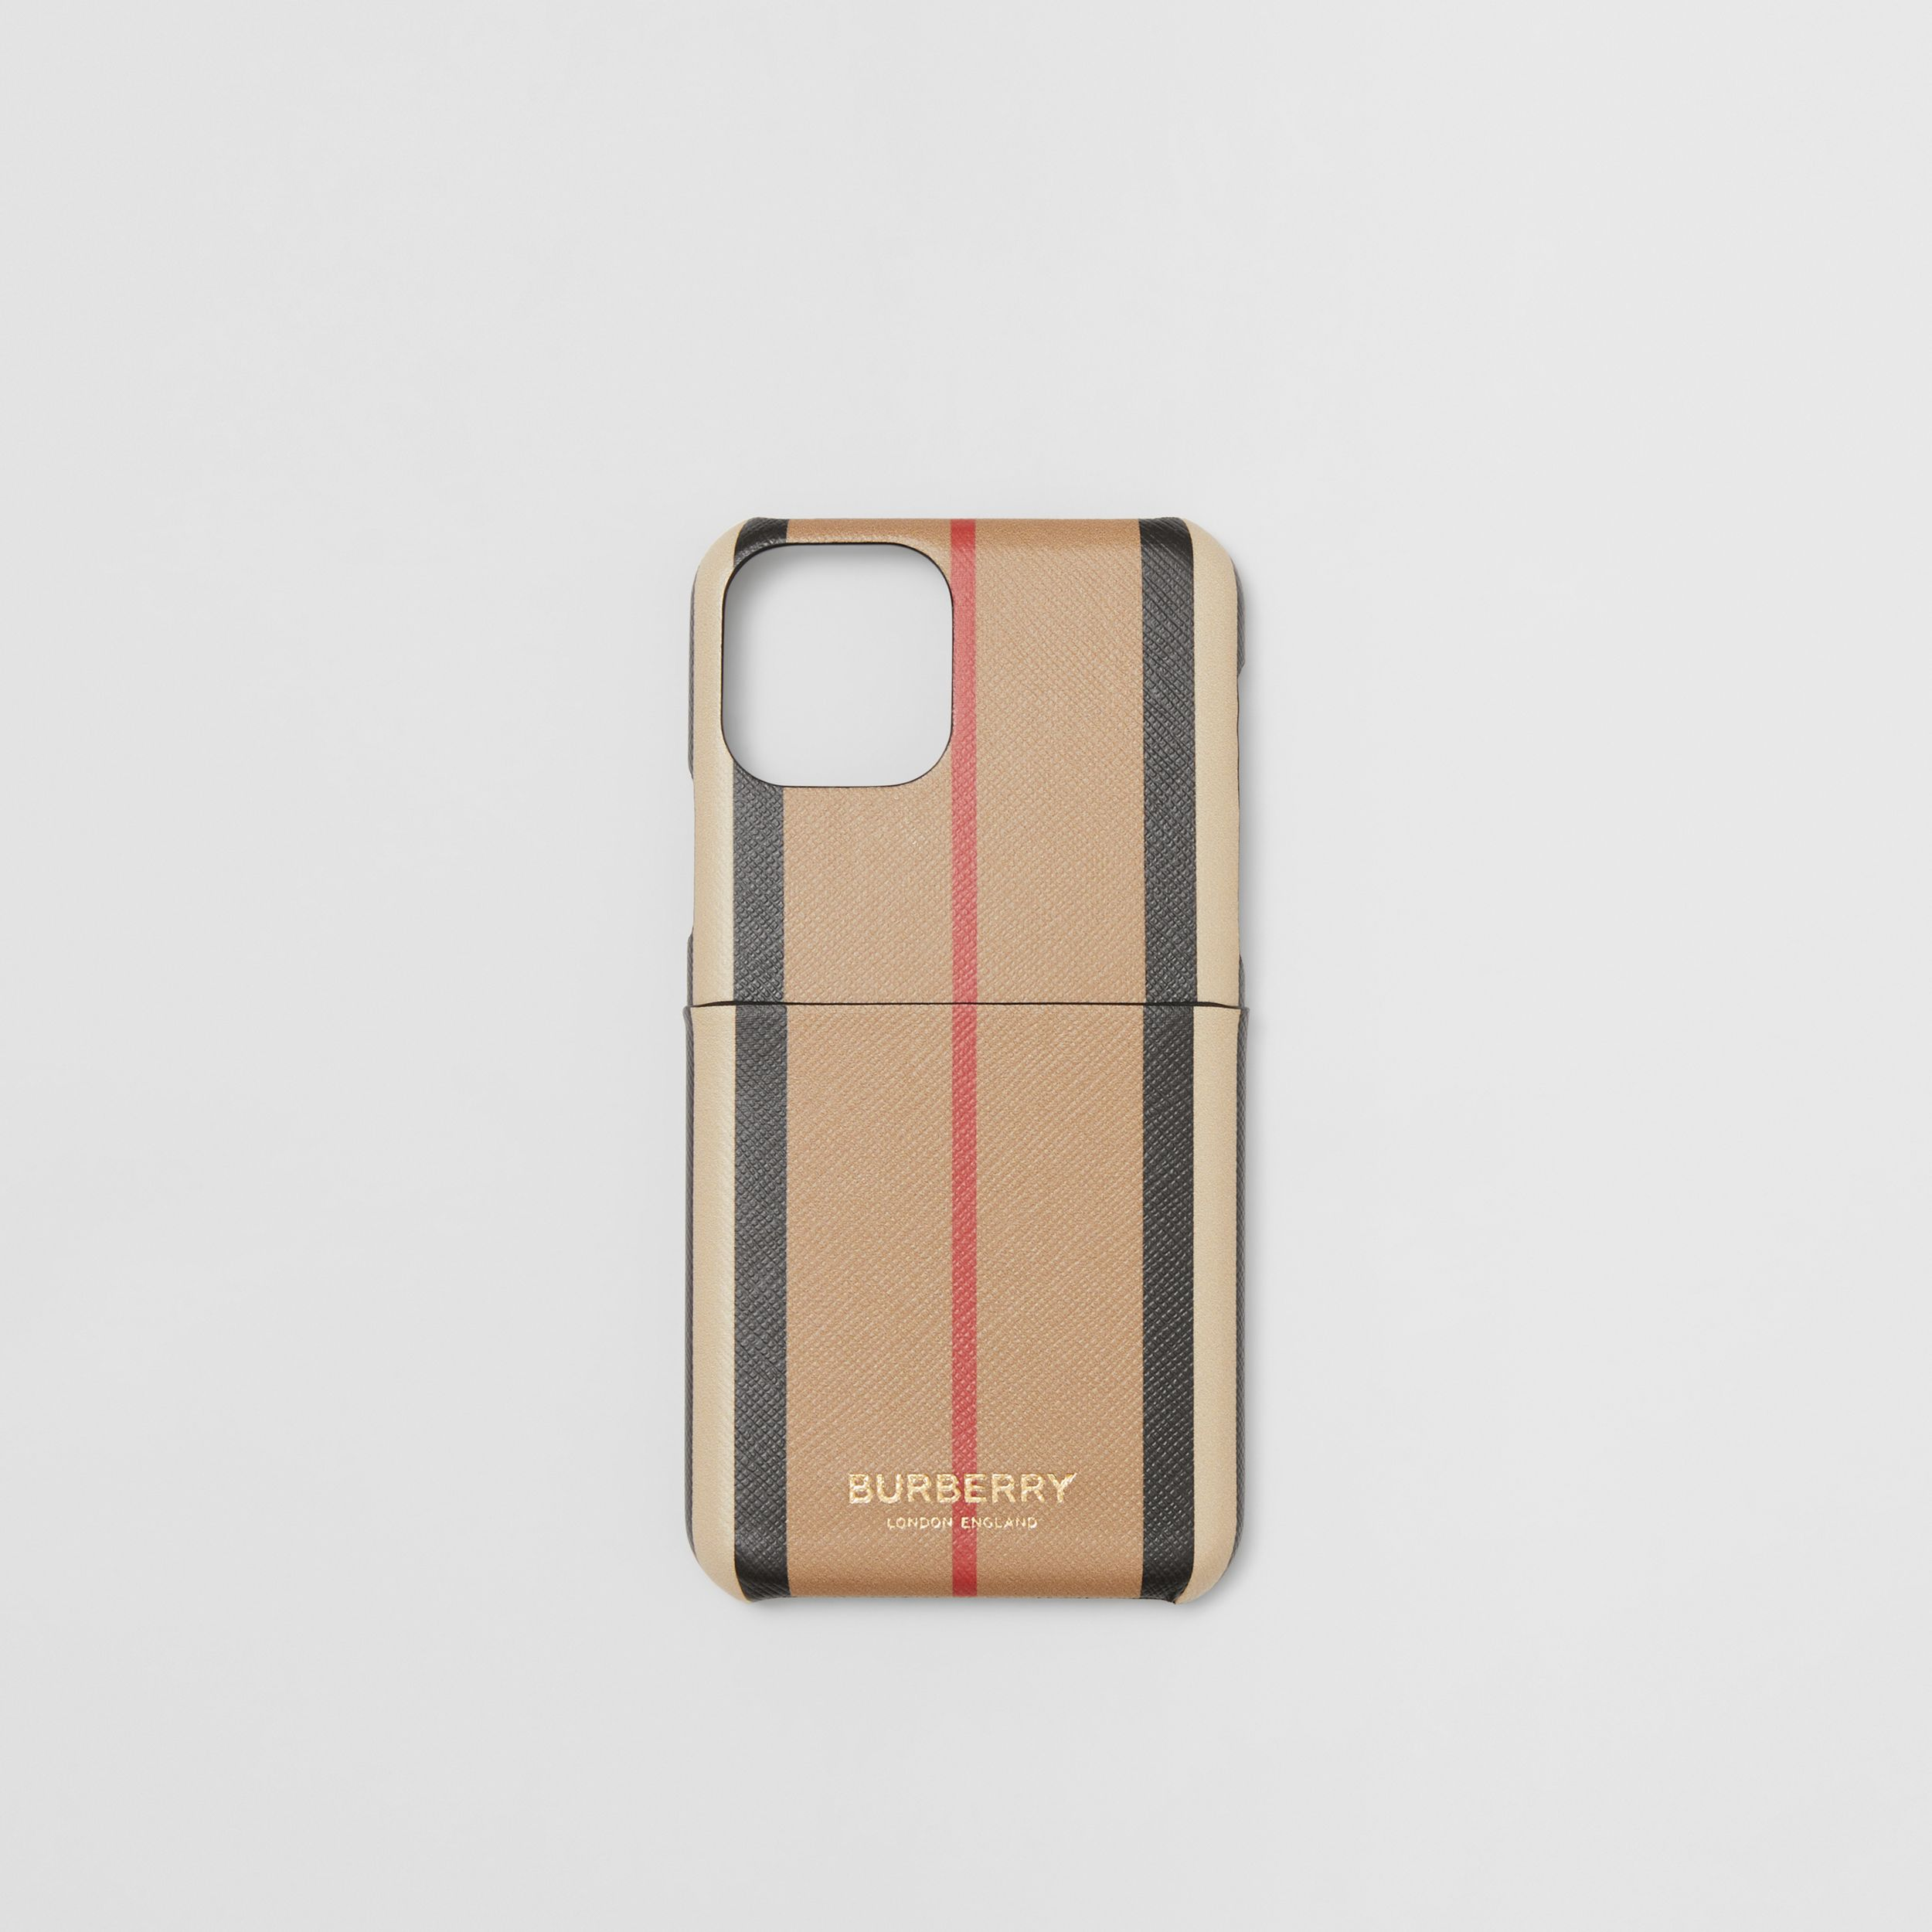 iPhone 11 Pro-Etui aus Eco-Canvas im Streifendesign (Vintage-beige) | Burberry - 1